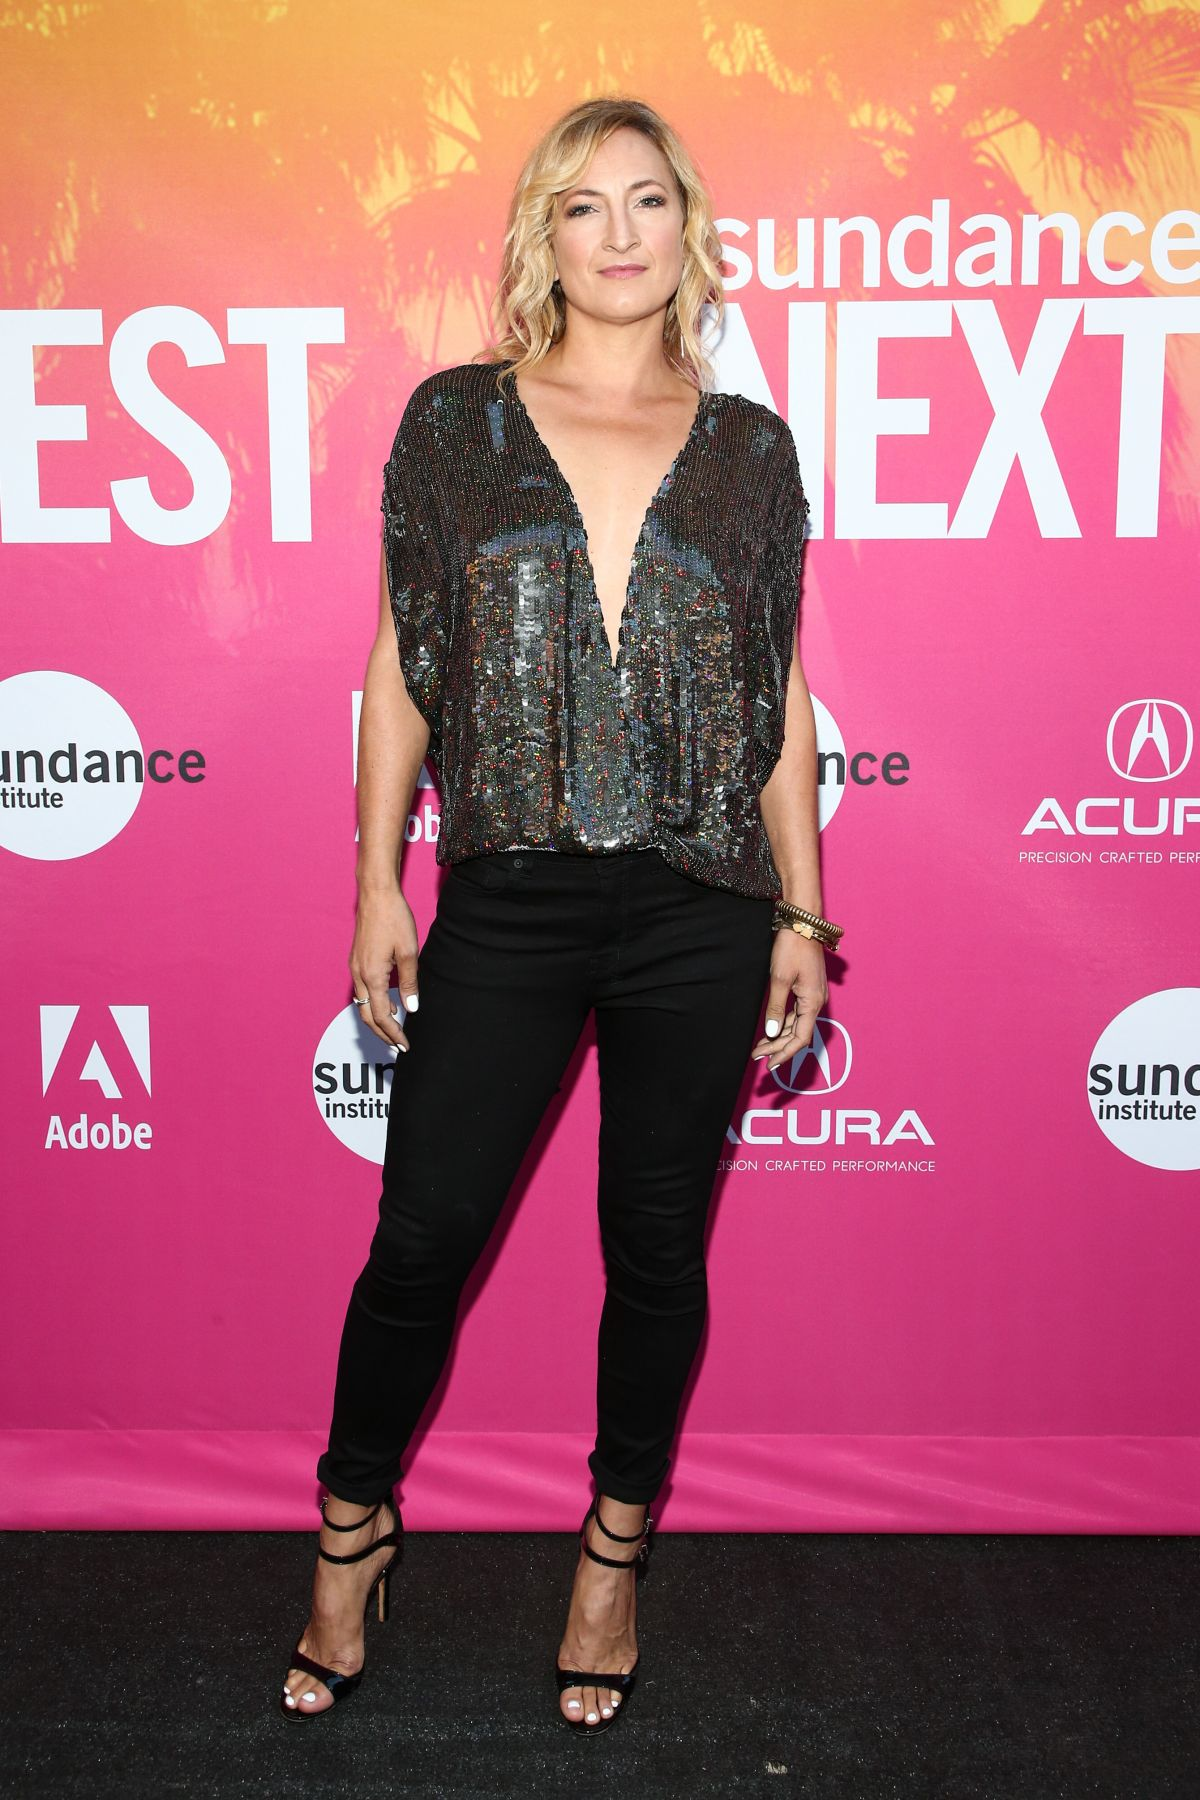 ZOE BELL at Sundance Next Fest Opening Night in Los Angeles 08/10/2017